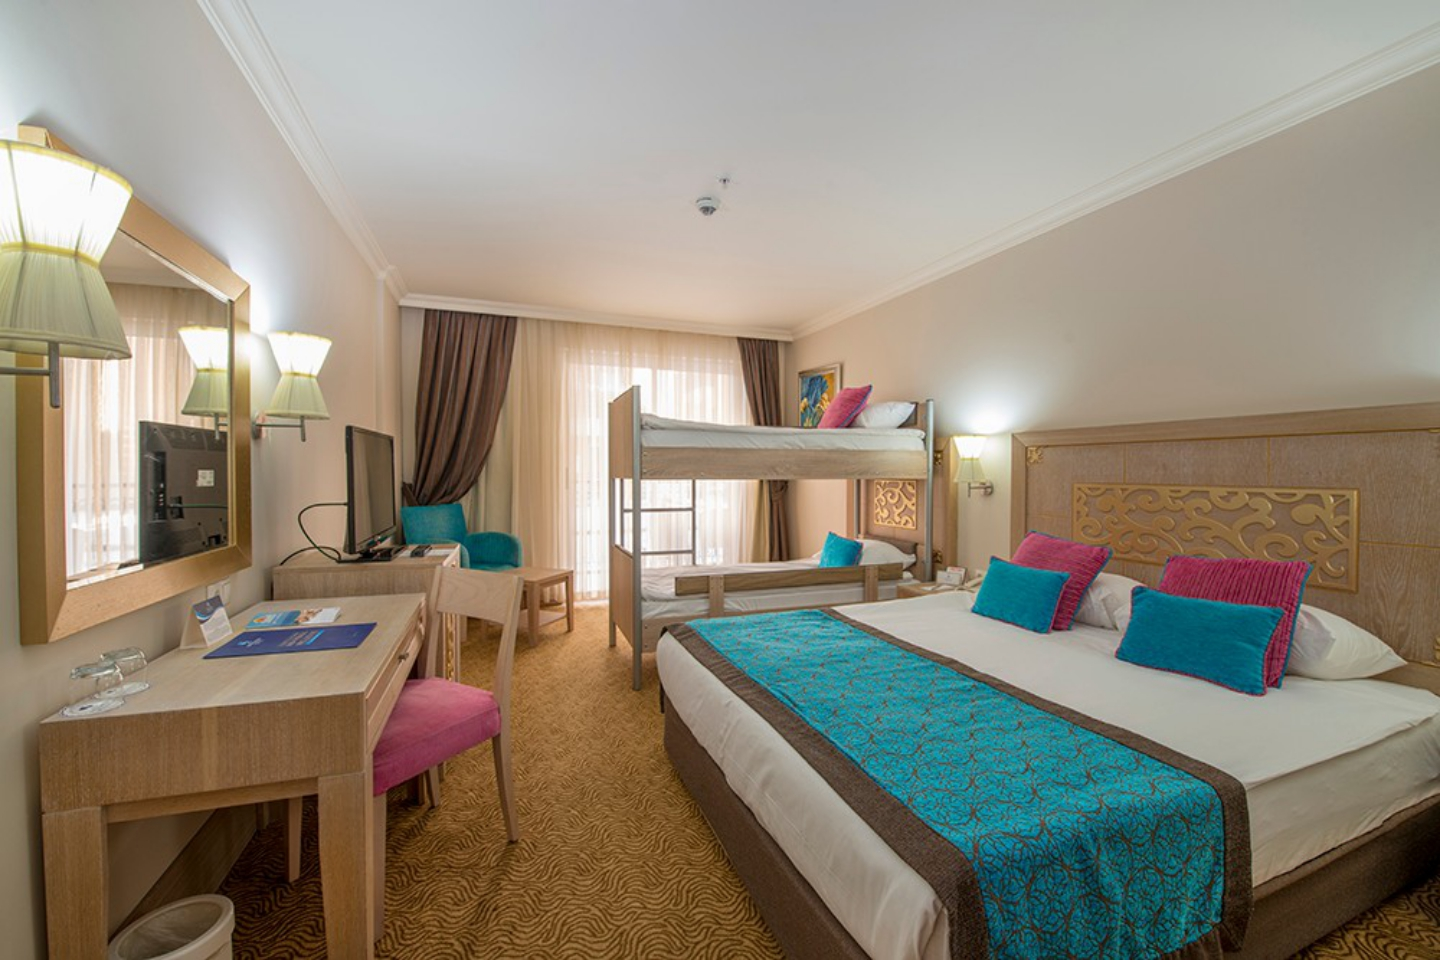 Crystal Hotels Family Resort Spa Boğazkent